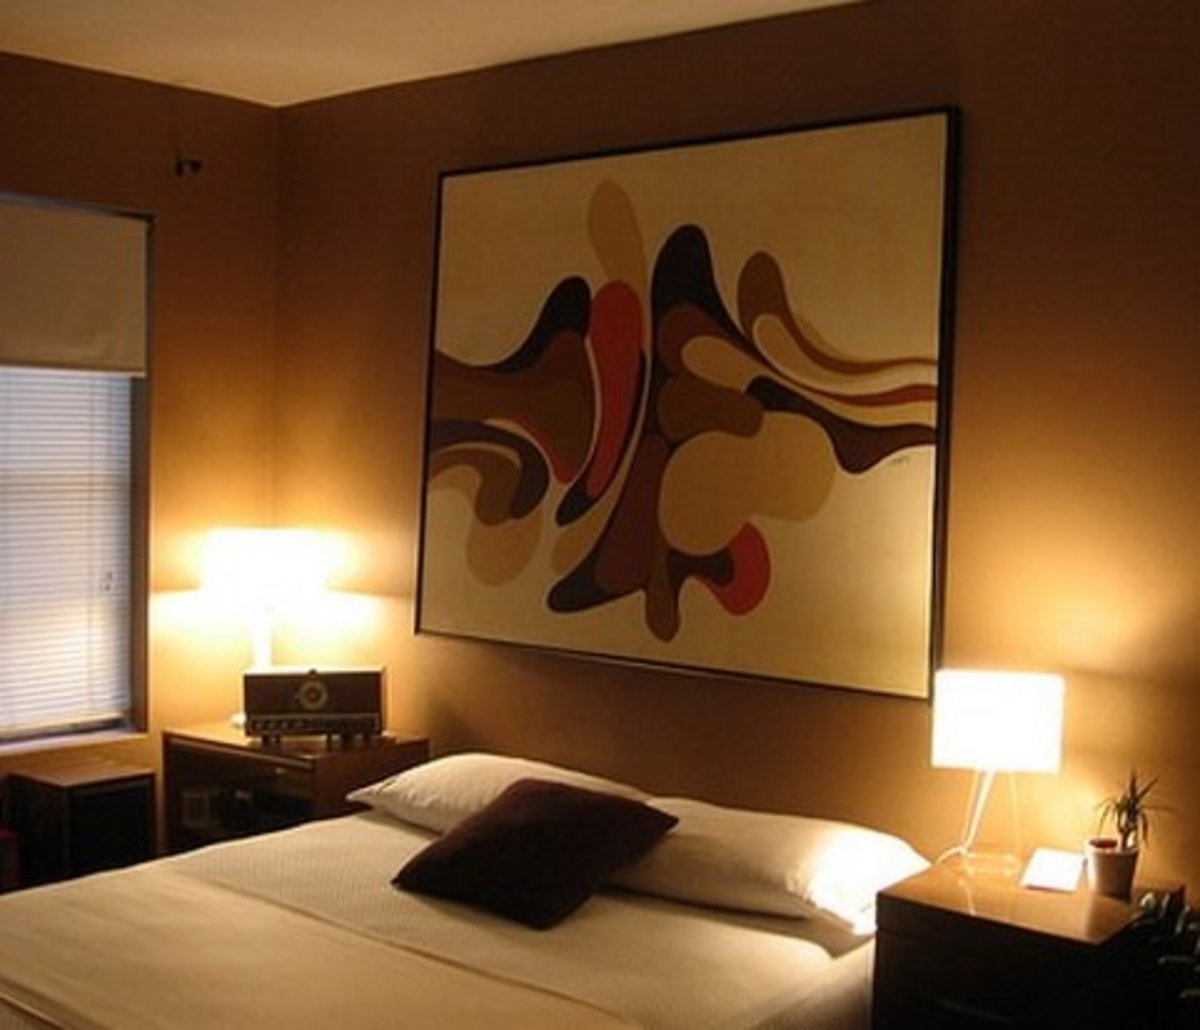 Pleasant bedroom lighting.  Like the home office, bedrooms do not need torrents of light.